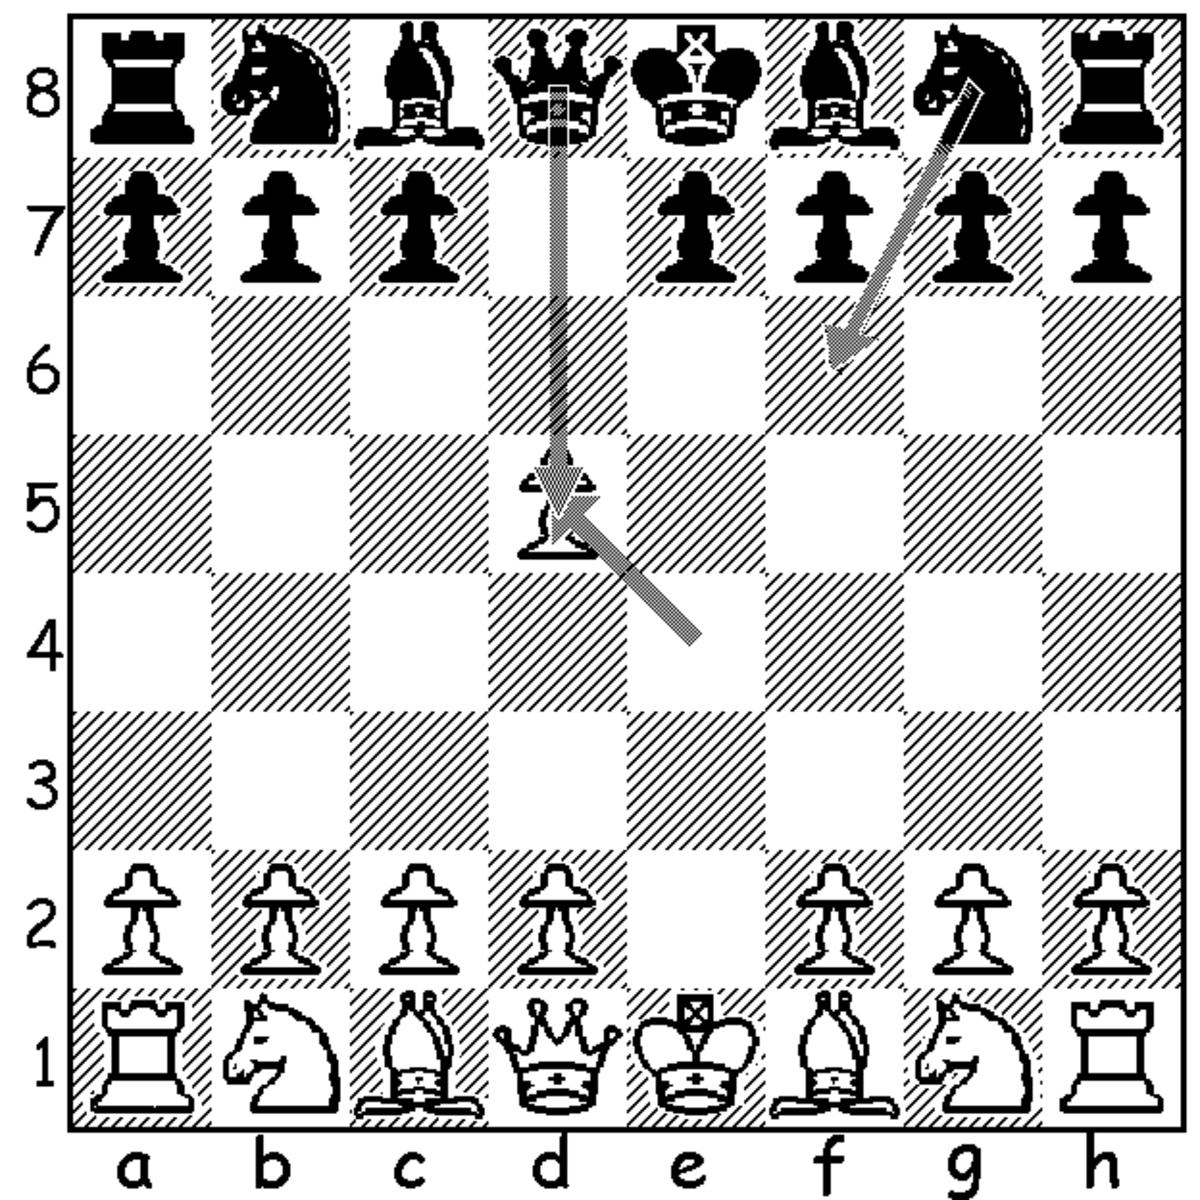 Chess Openings: A Comprehensive and Offbeat Way for White to Play Against the Scandinavian (Center-Counter) Defense